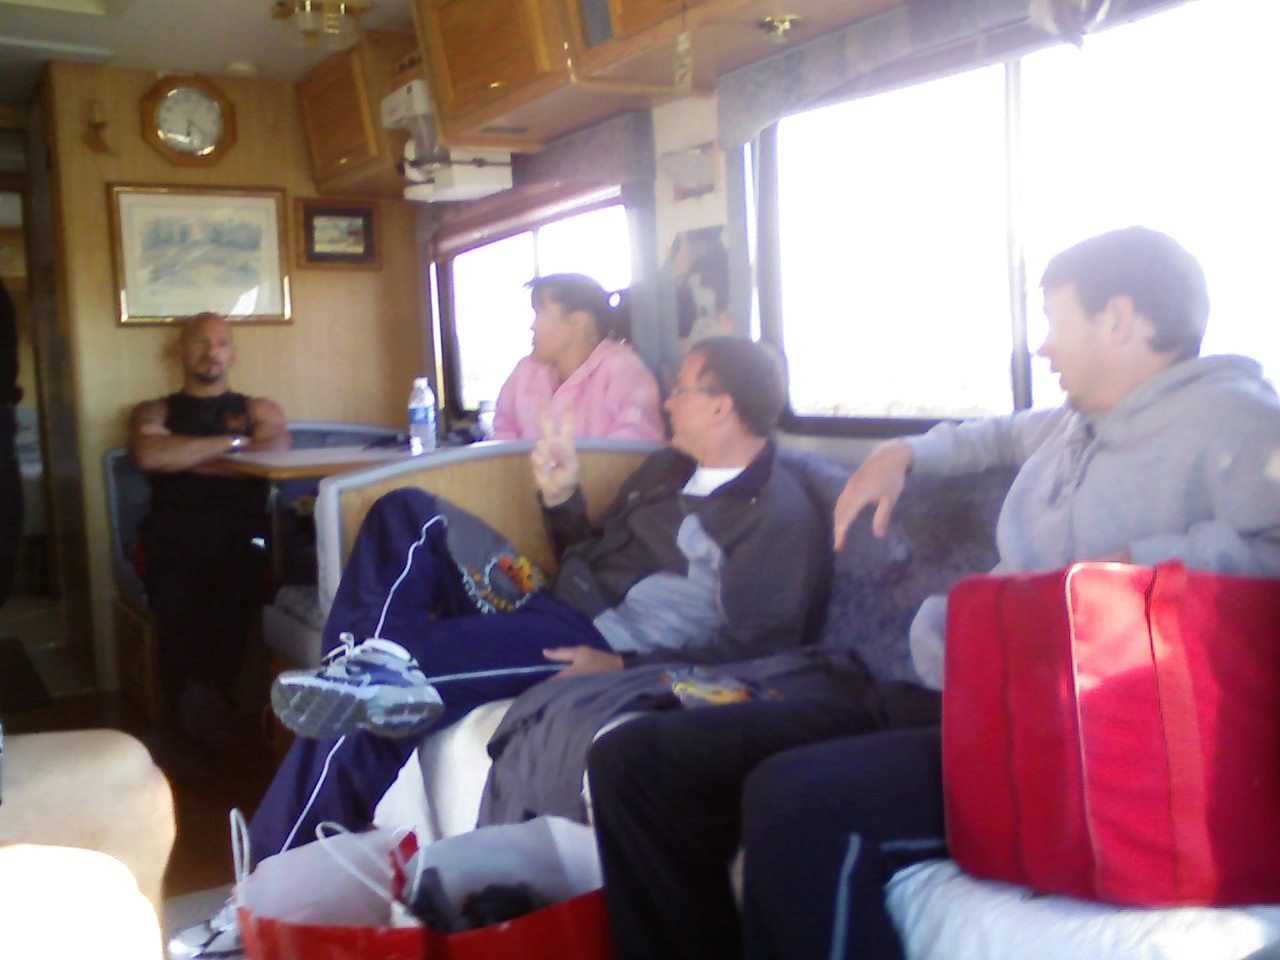 Onboard the Torch Run relay bus with the runners awaiting their turn